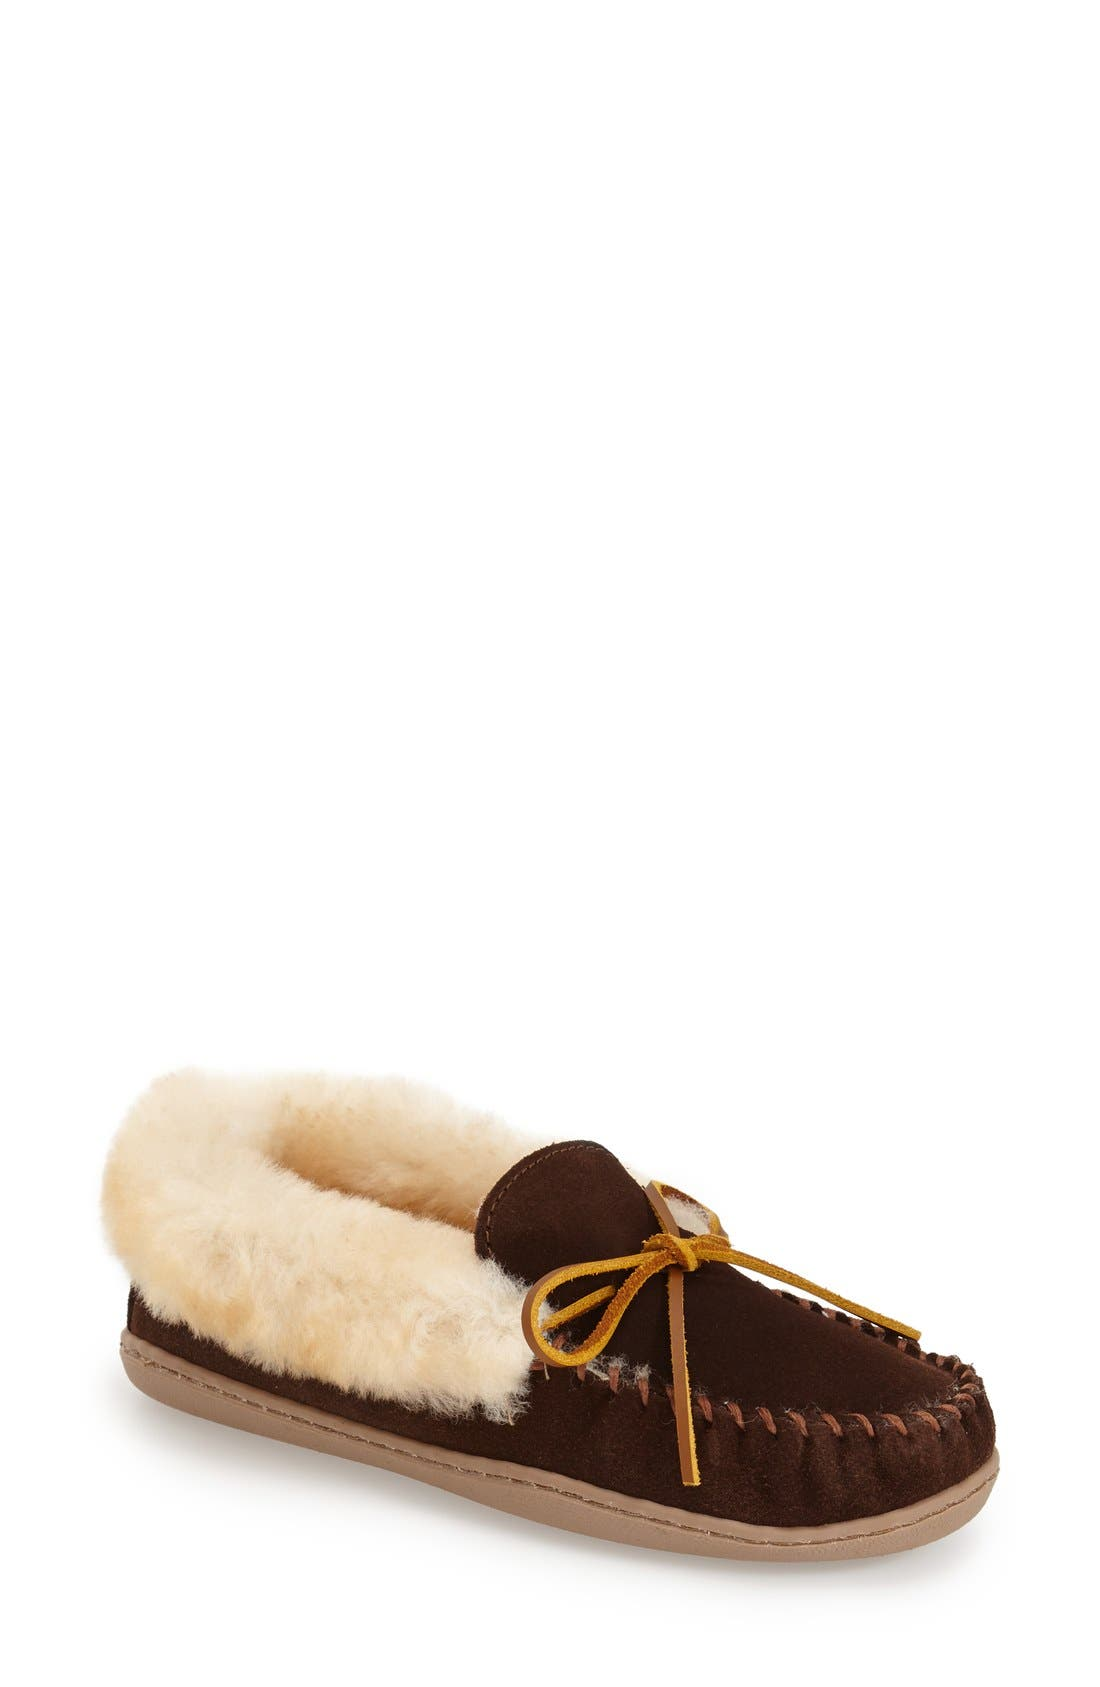 MINNETONKA, 'Alpine' Genuine Shearling Moccasin Slipper, Main thumbnail 1, color, CHOCOLATE SUEDE